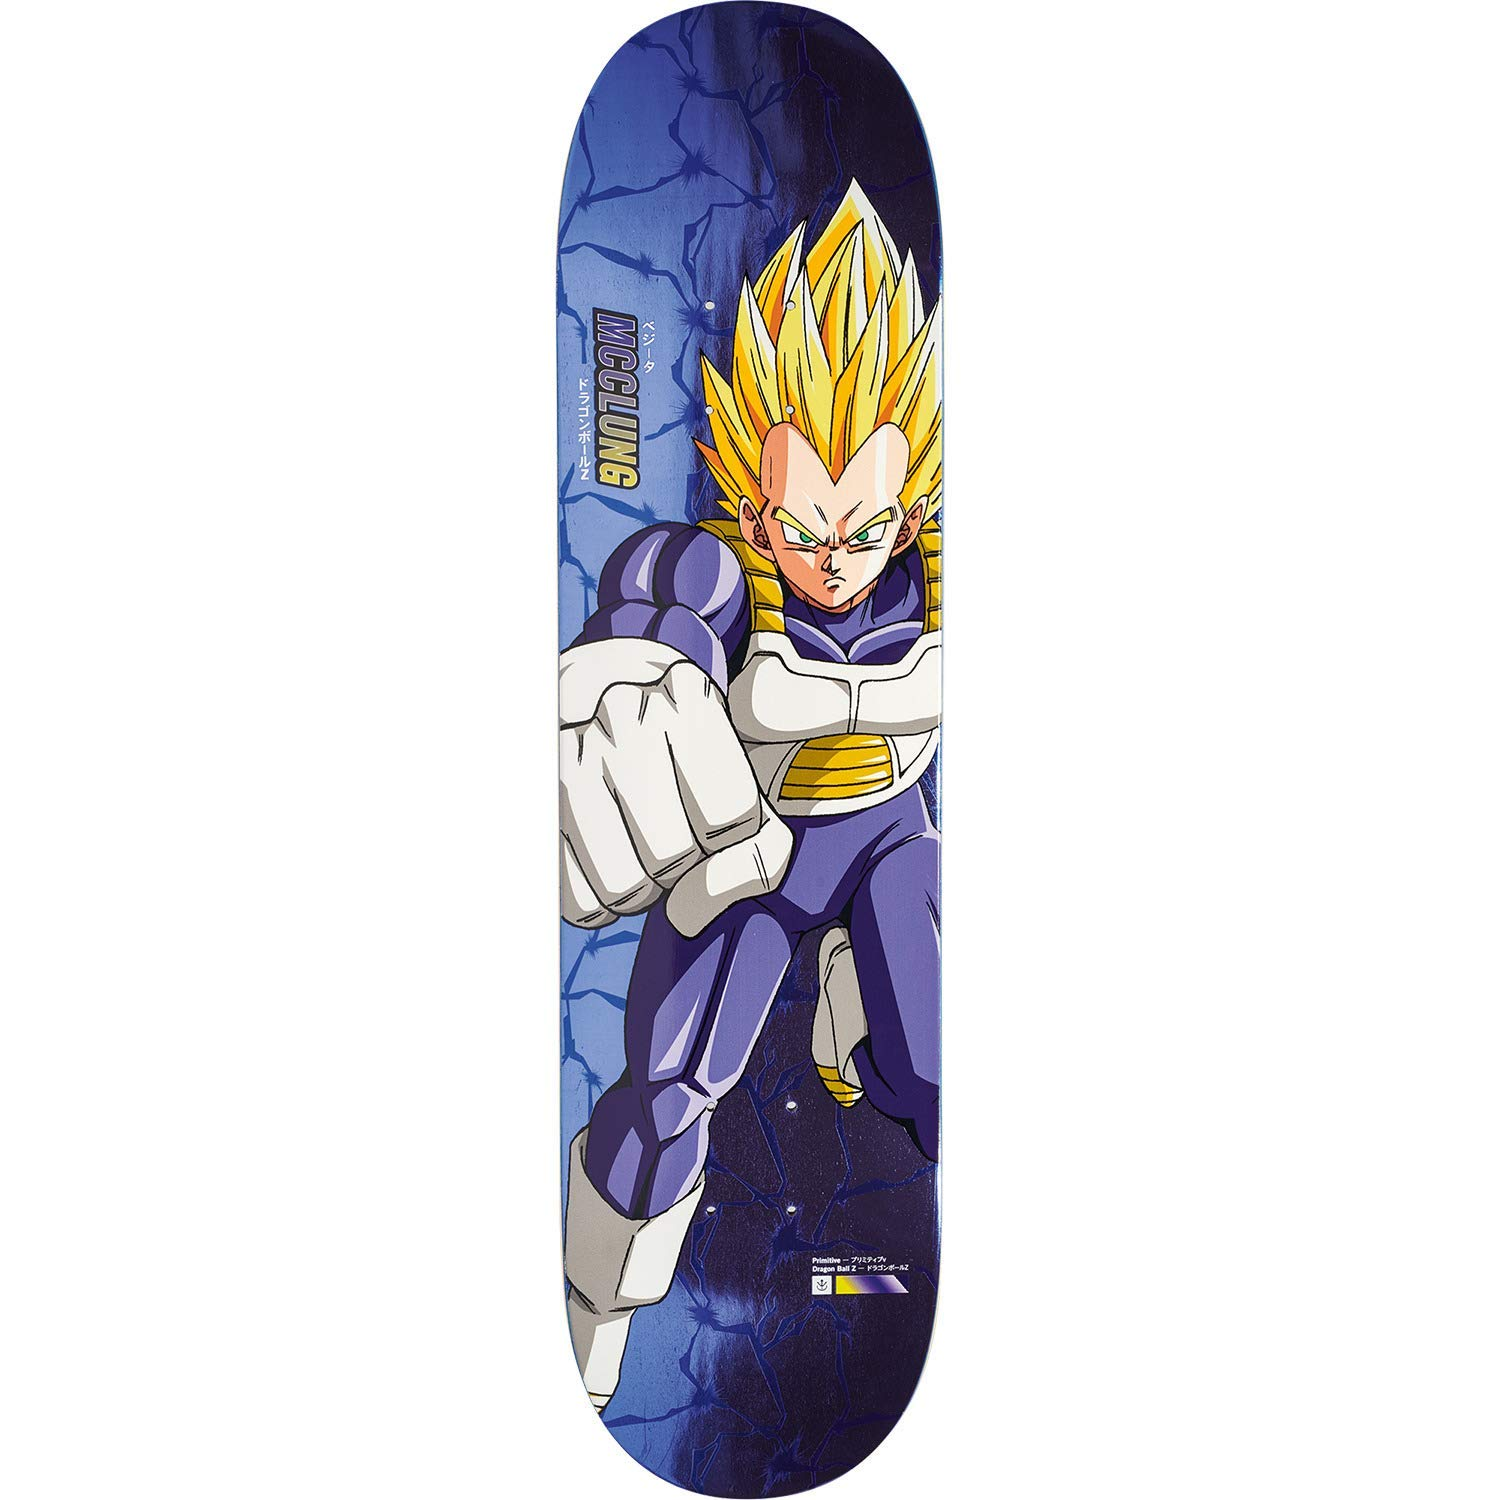 "Primitive Skateboarding Trent McClung Dragon Ball Z Vegeta Blue Skateboard Deck - 8"" x 31.5"""